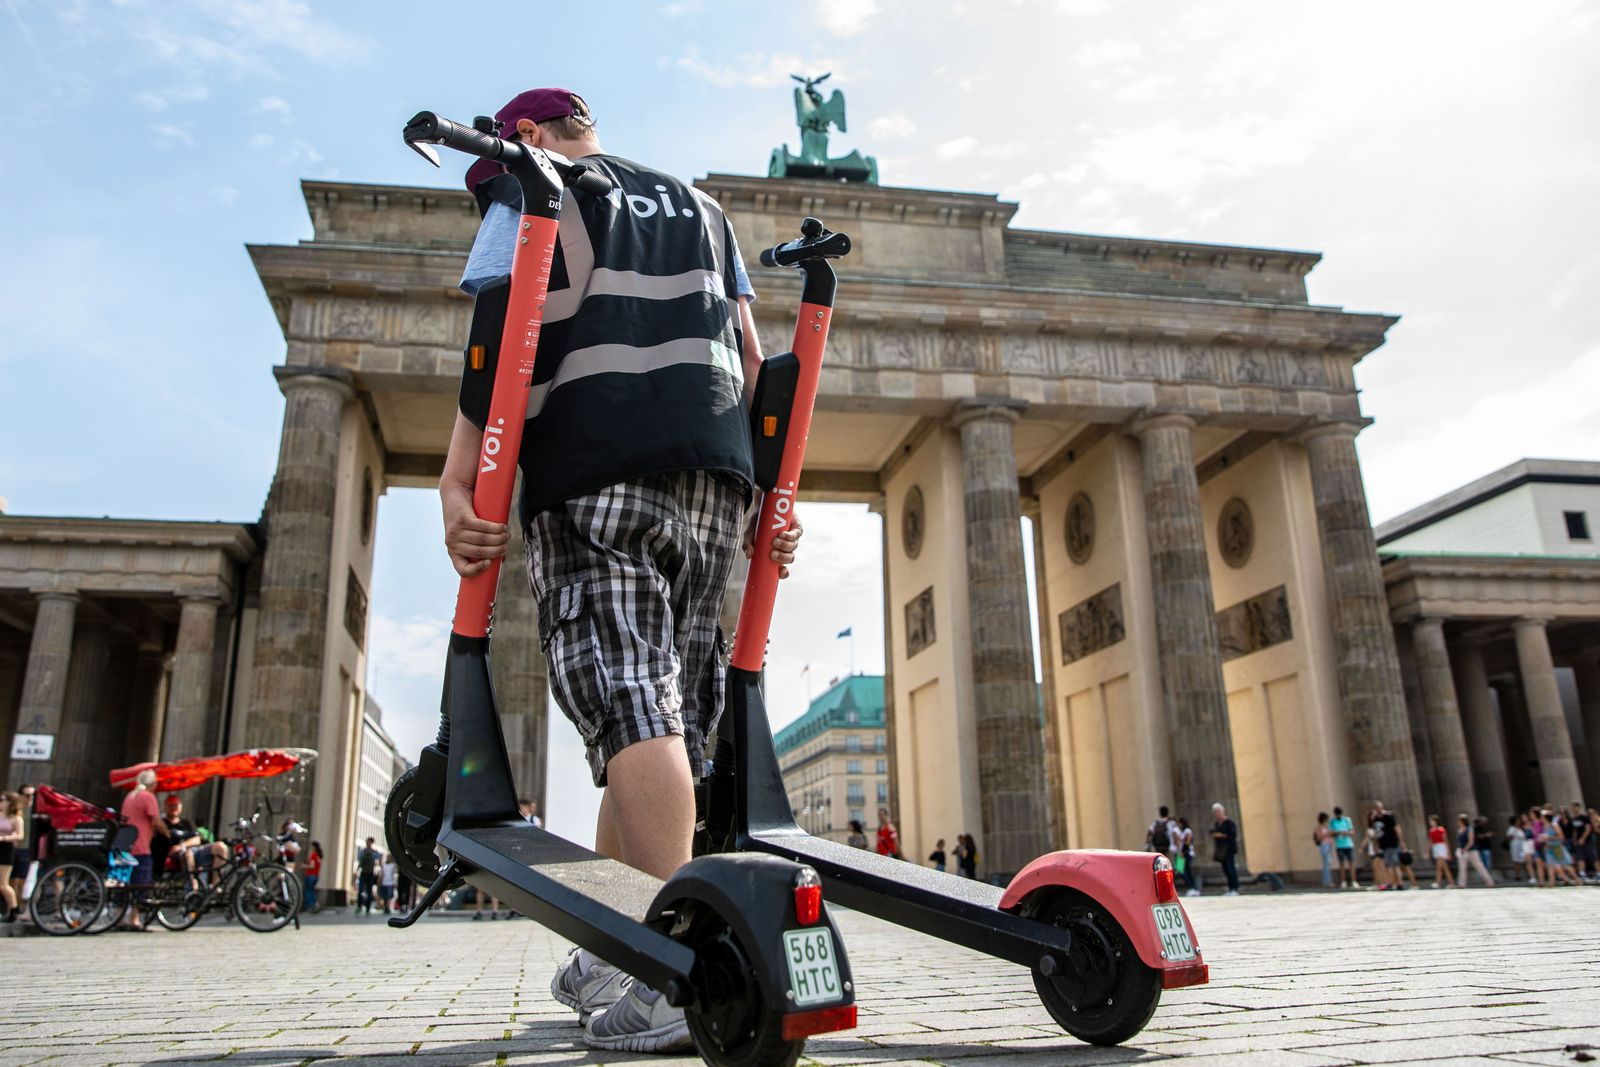 VOI Hunter, electric scooter chargers in Berlin, Germany - 07 Aug 2019